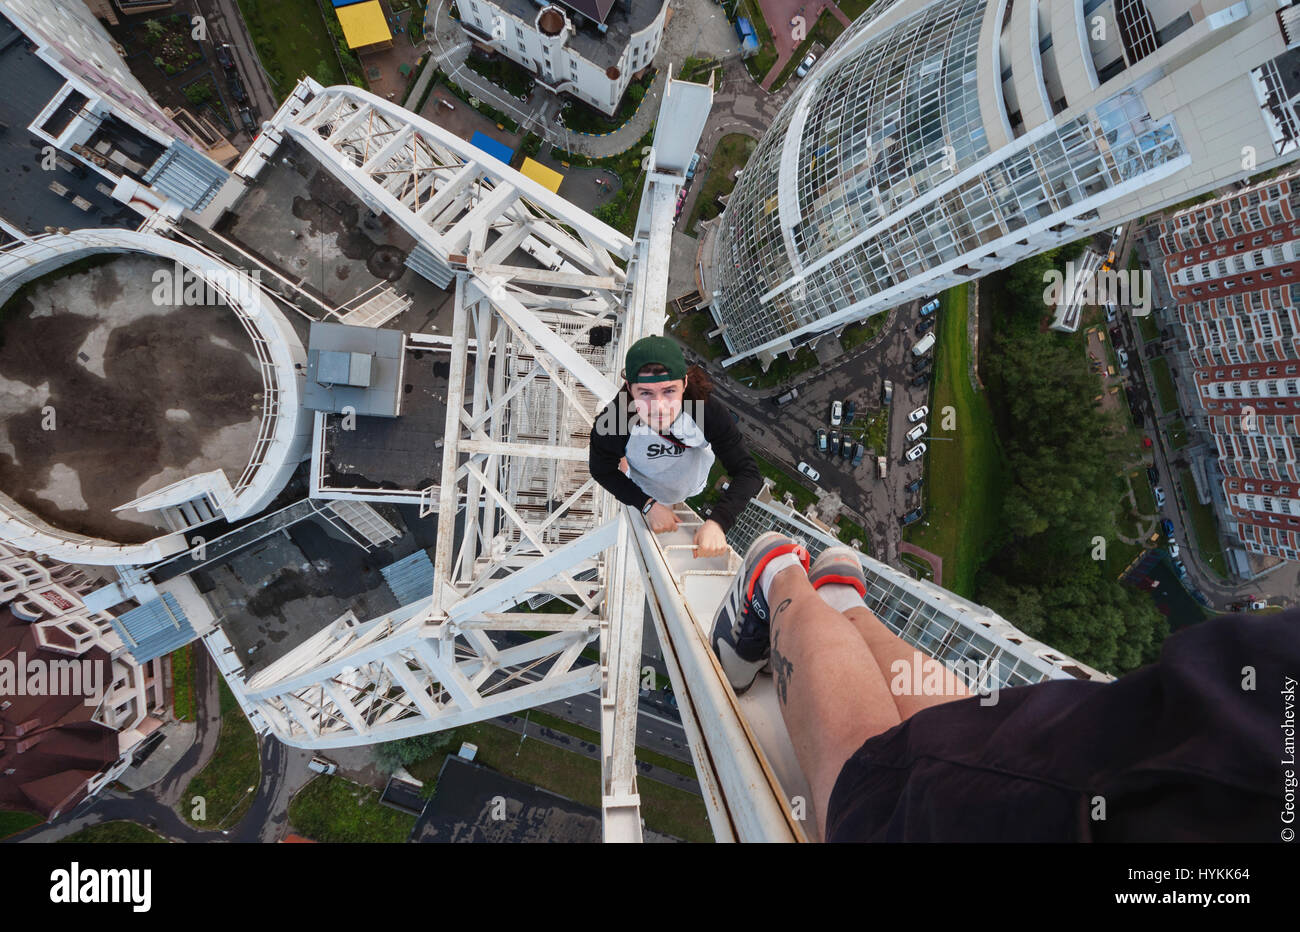 Moscow. VERTIGO inducing pictures from the top of a 155-foot-high crane have been captured by a photographer in - Stock Image